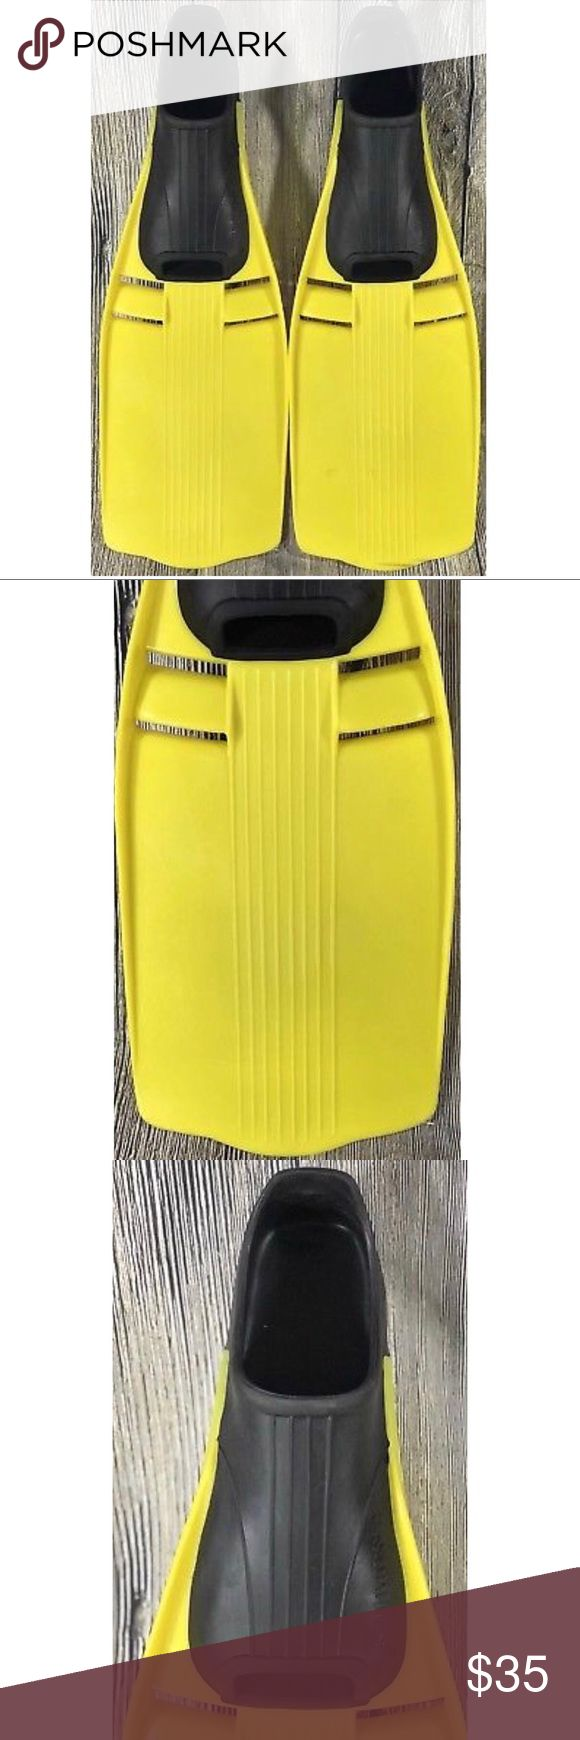 """US Divers Scuba Diving Snorkel Fins Mens US Divers Scuba Diving Snorkel Fins Mens Yellow Black Size US 10-11 Large Rubber. Pre owned in great condition with no cracks, holes or tears. There are normal scratches on the fins from use. The fins measure 23"""" in total length and 10.5"""" from heel to toe. US Divers Accessories"""